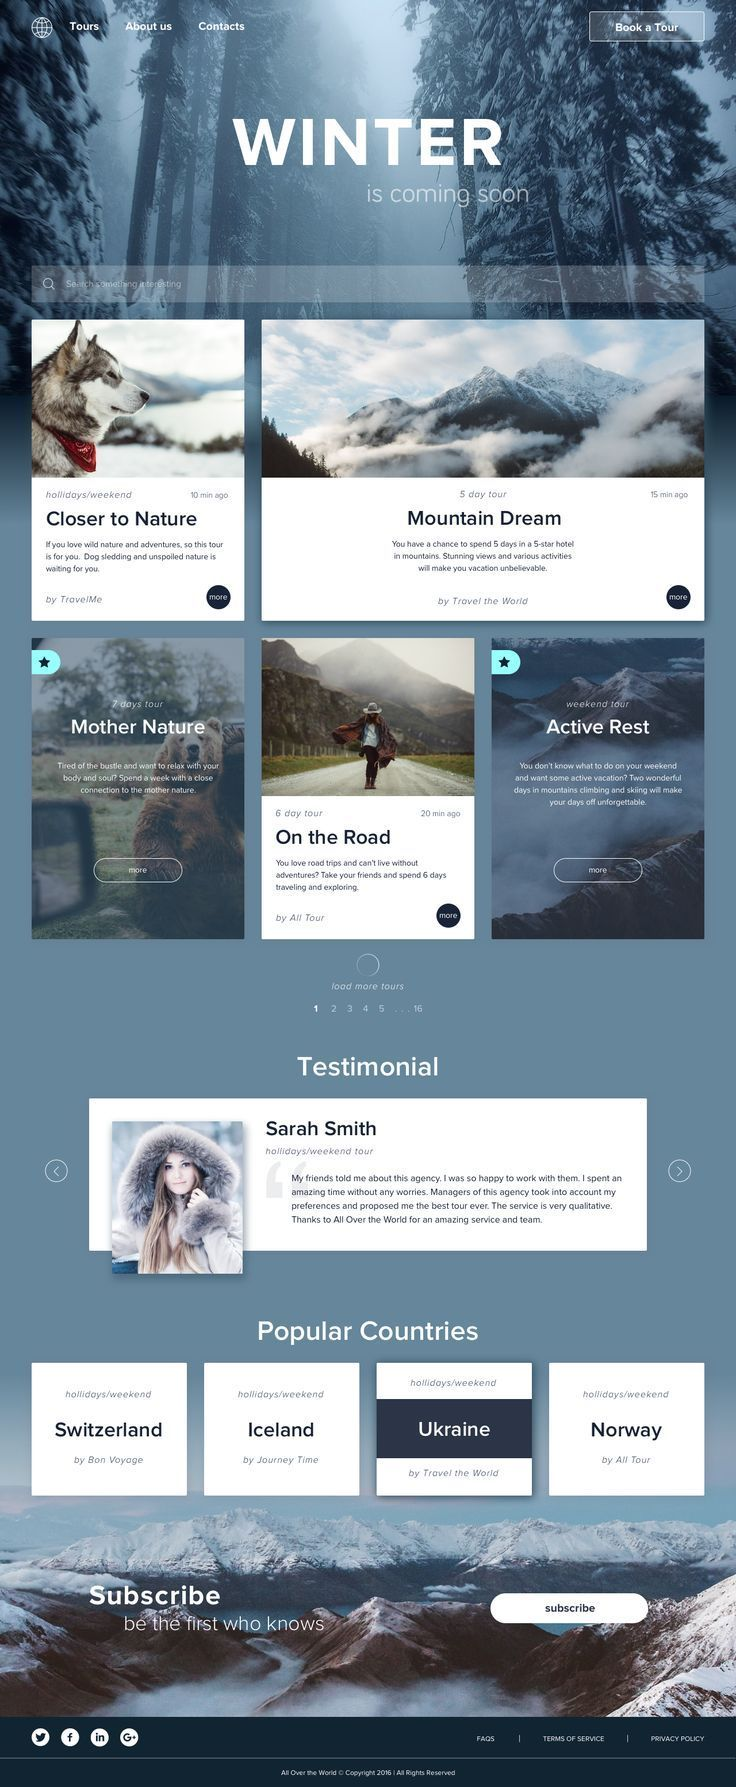 Showcase And Discover Creative Work On The World 39 S Leading Online Platform For Creative Indu Creative Web Design Web Design Tips Website Design Inspiration